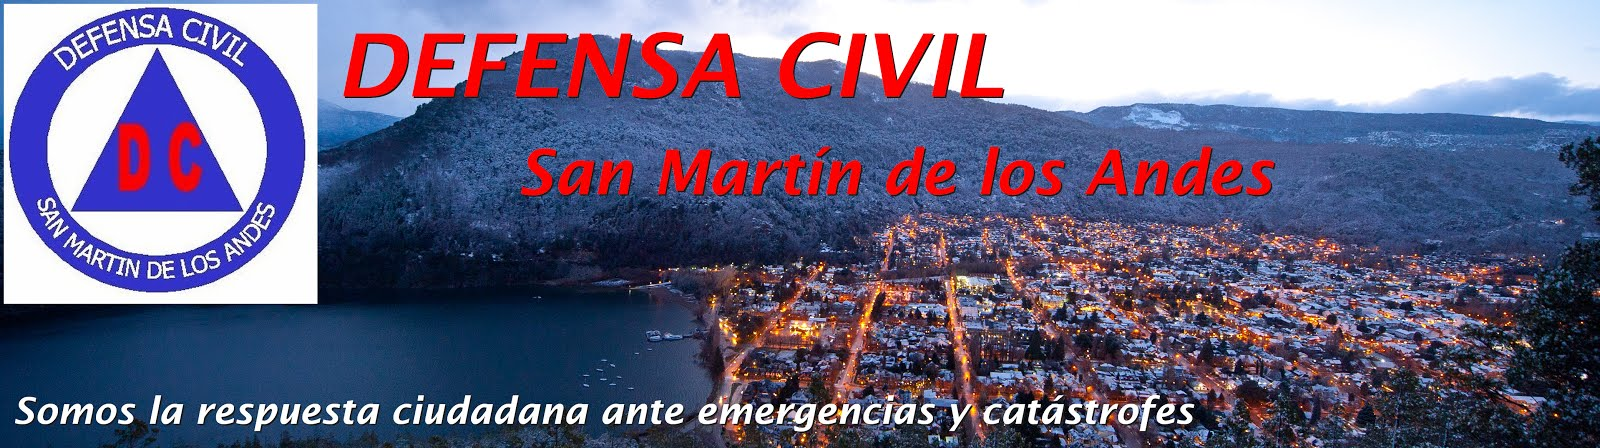 Defensa Civil San Martín de los Andes